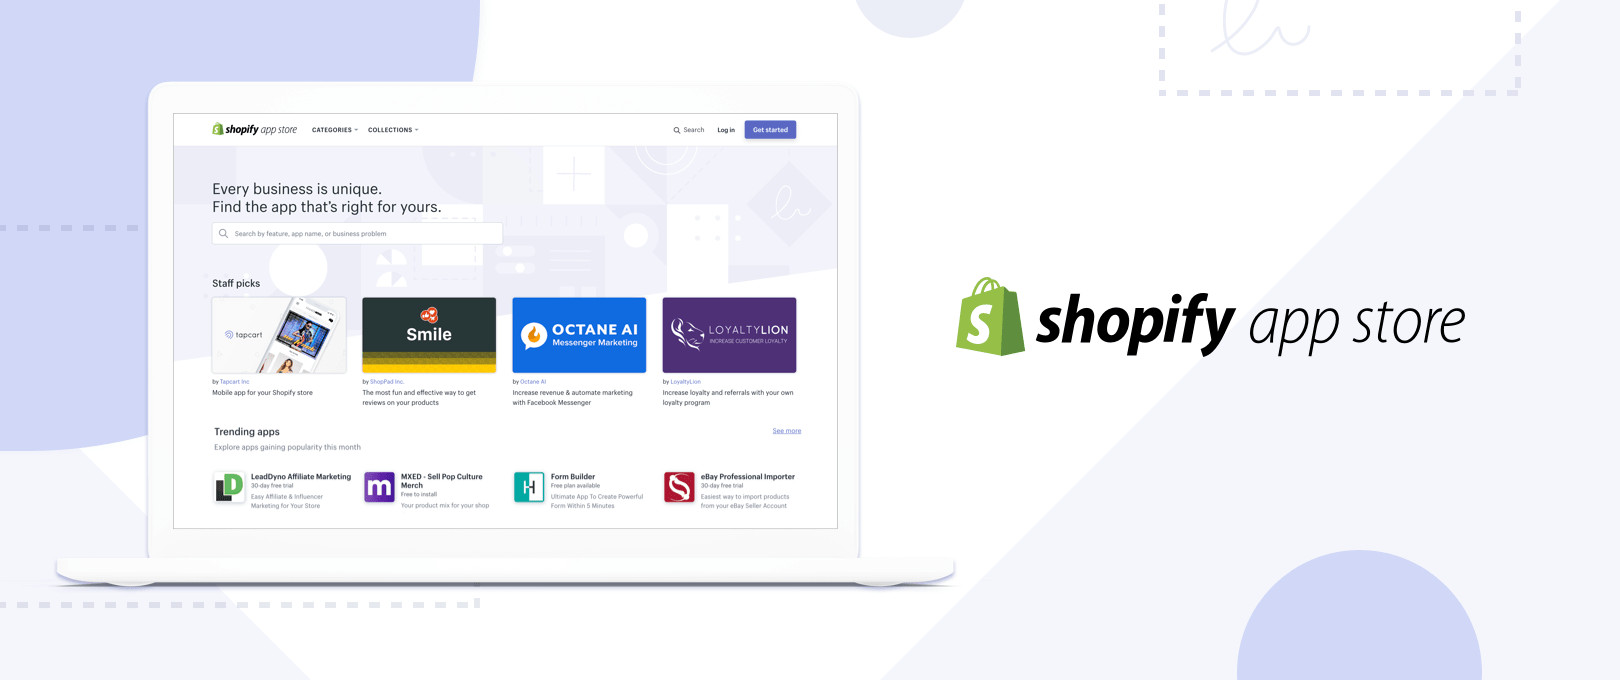 App Store Shopify